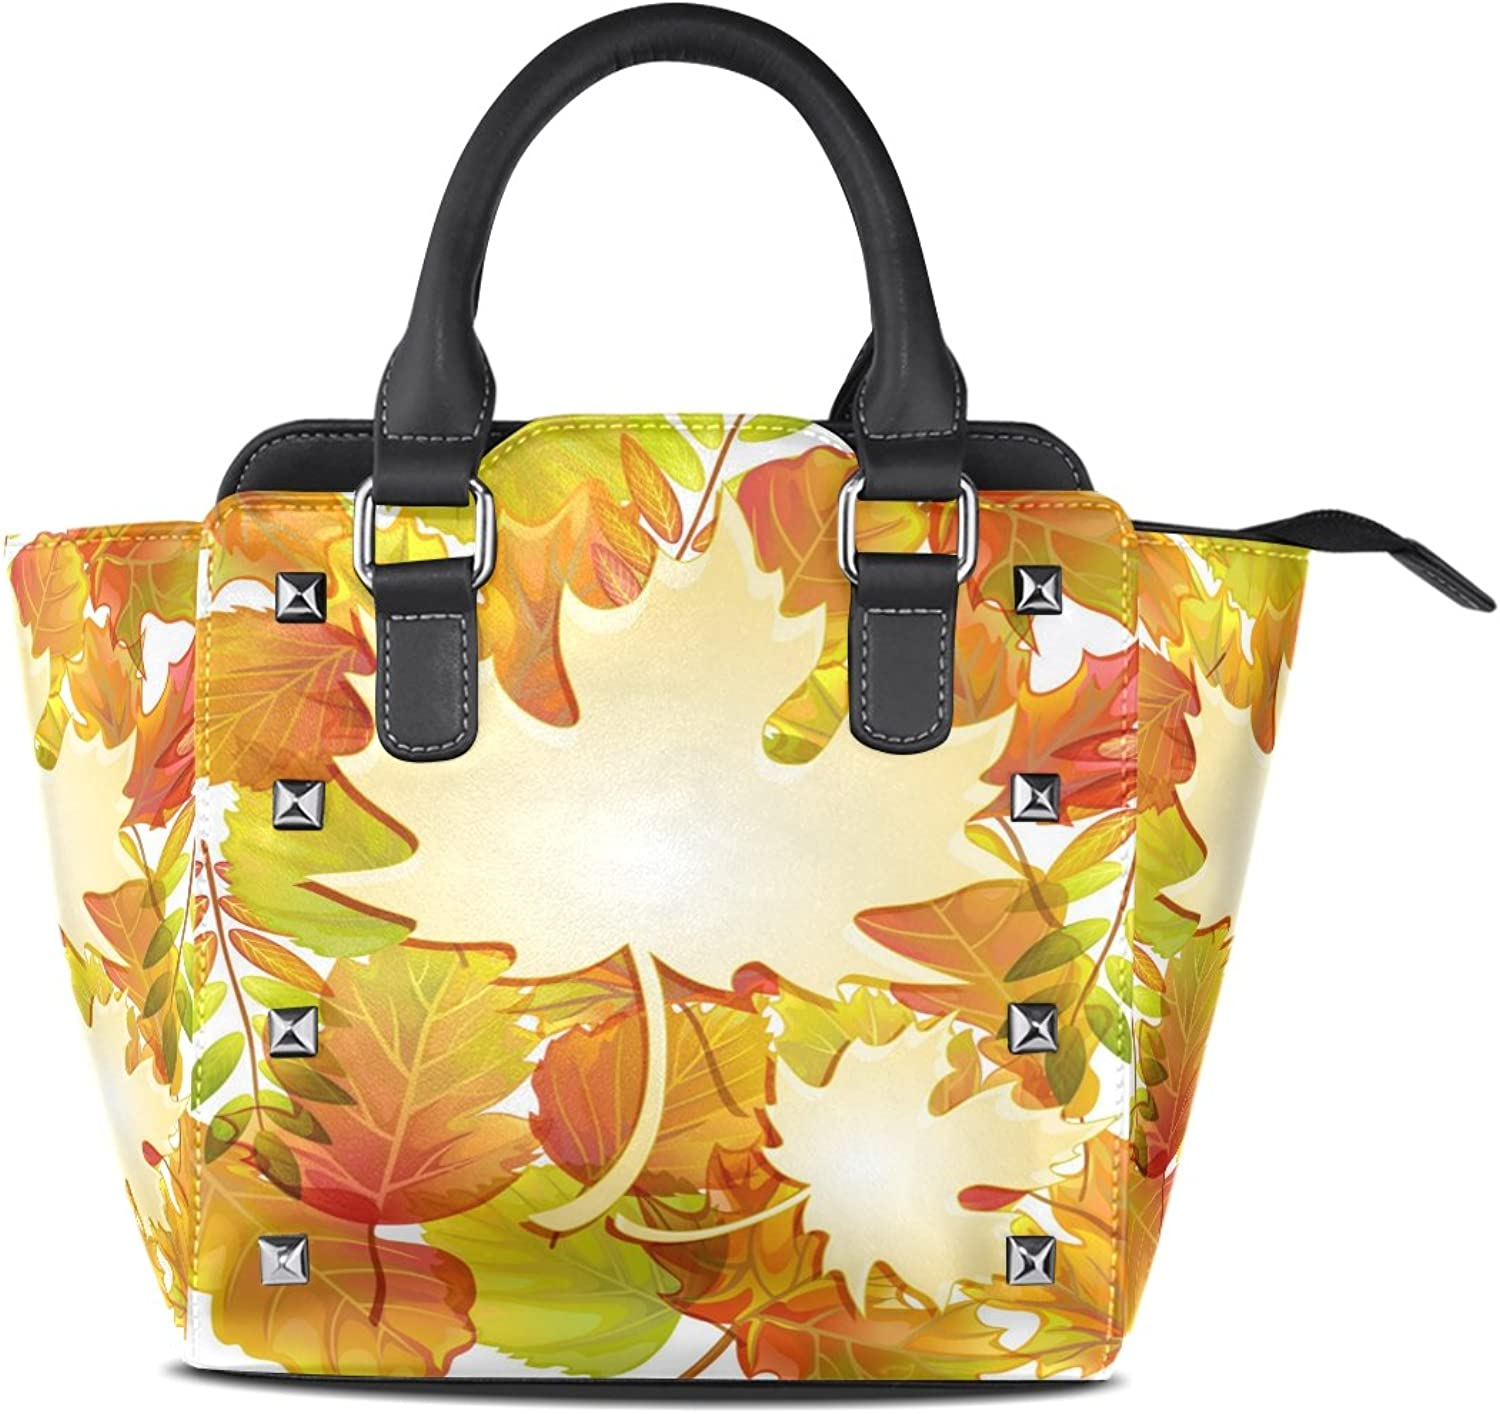 Womens Genuine Leather Hangbags Tote Bags Maple Leaves Purse Shoulder Bags